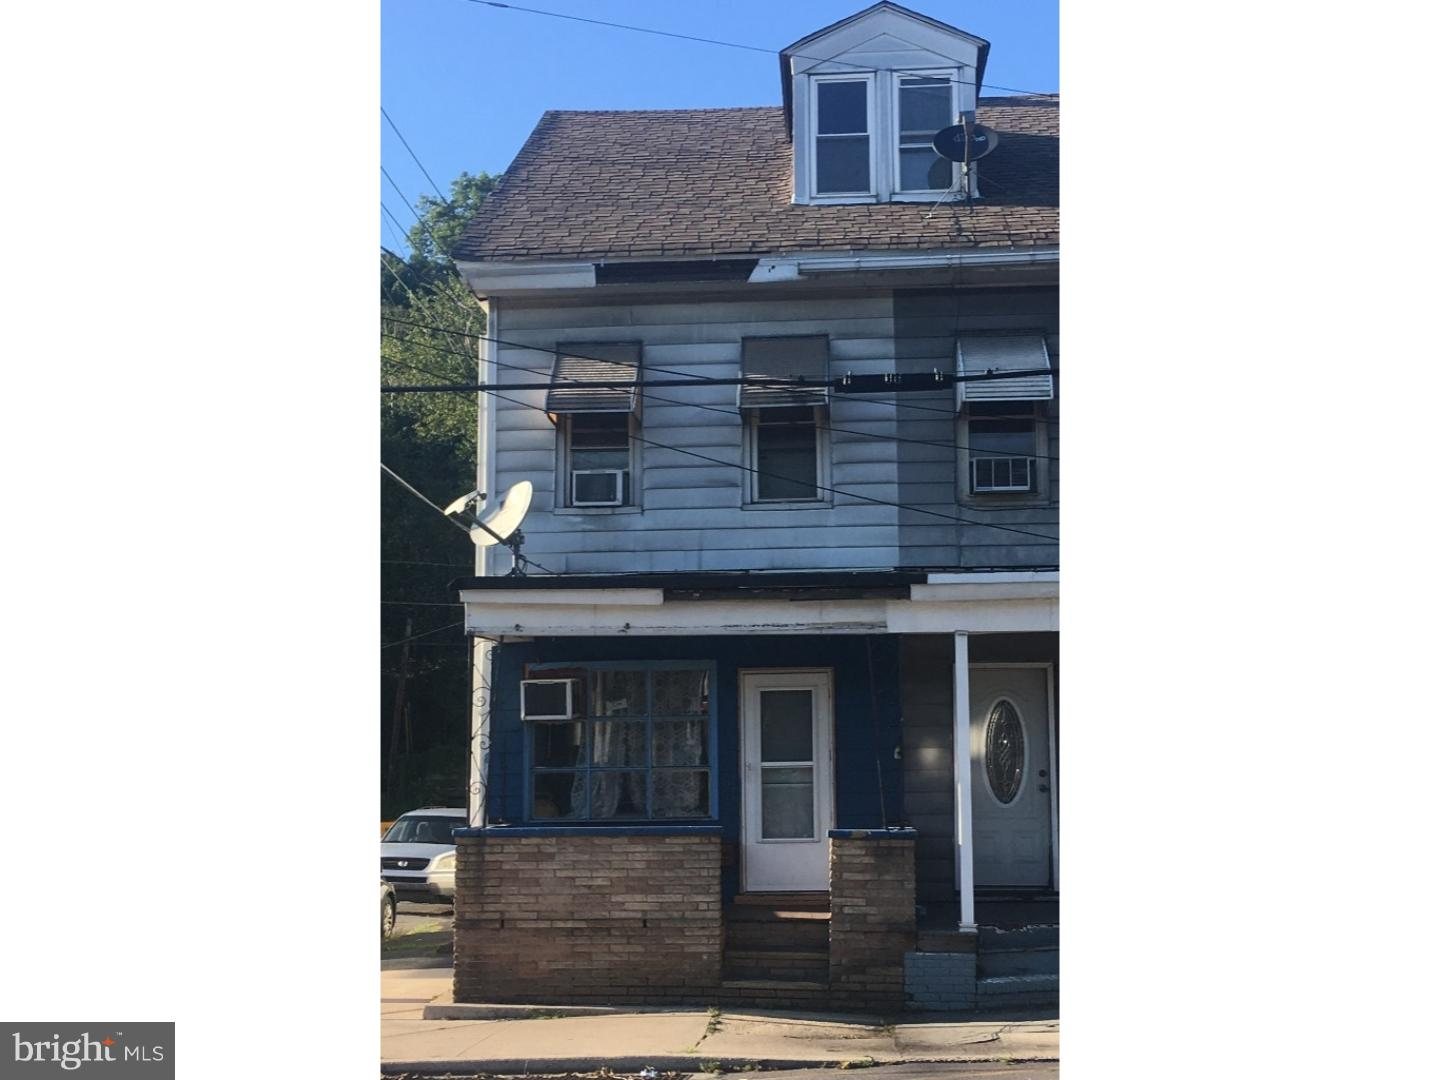 639 W CENTER STREET, MAHANOY CITY, PA 17948